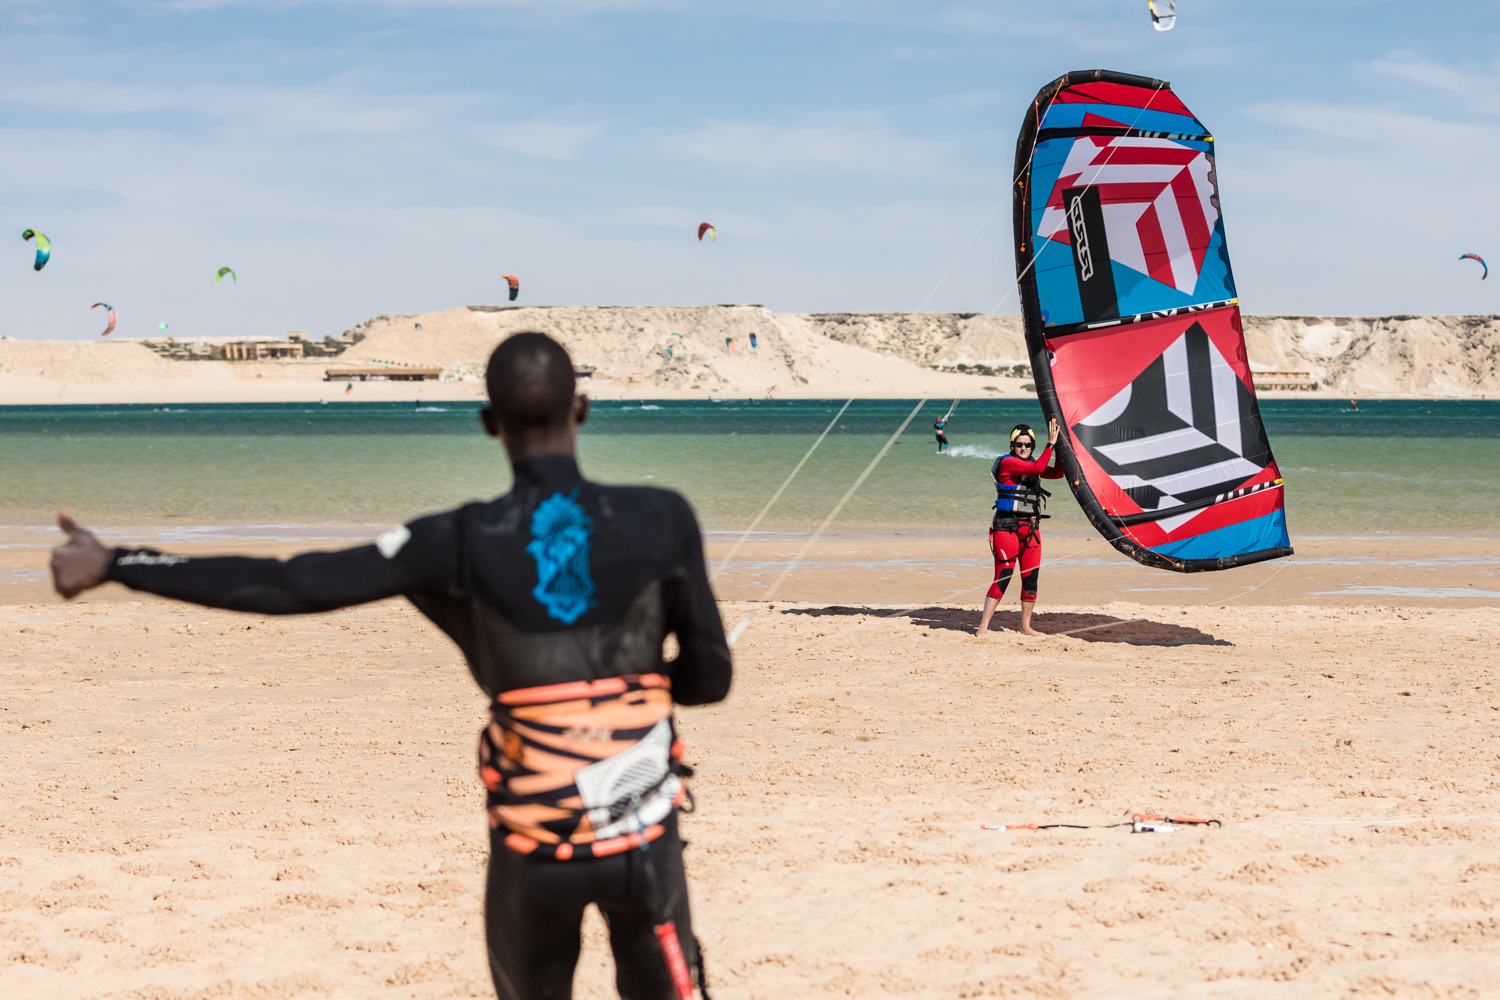 Kitesurfing at Dakhla Spirit